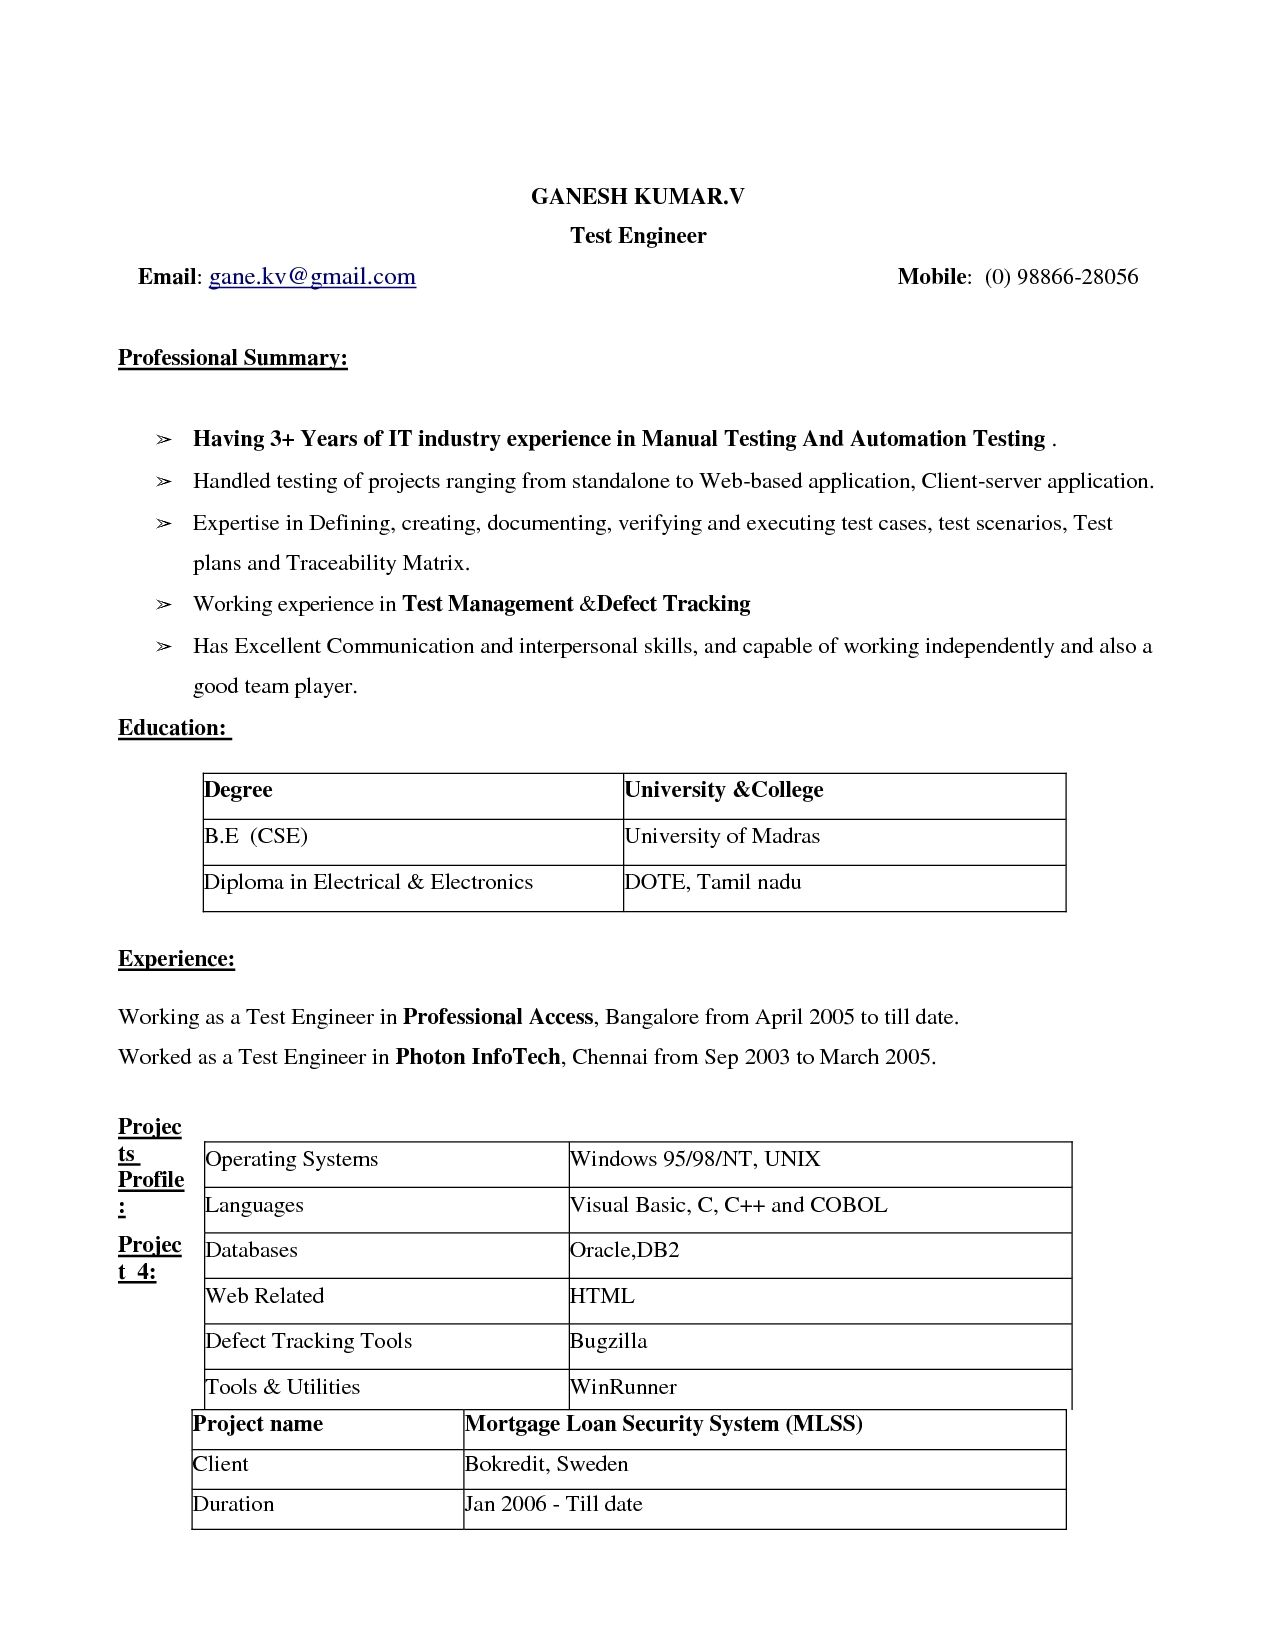 resume formats in ms word 9021eaaae best ms word resume